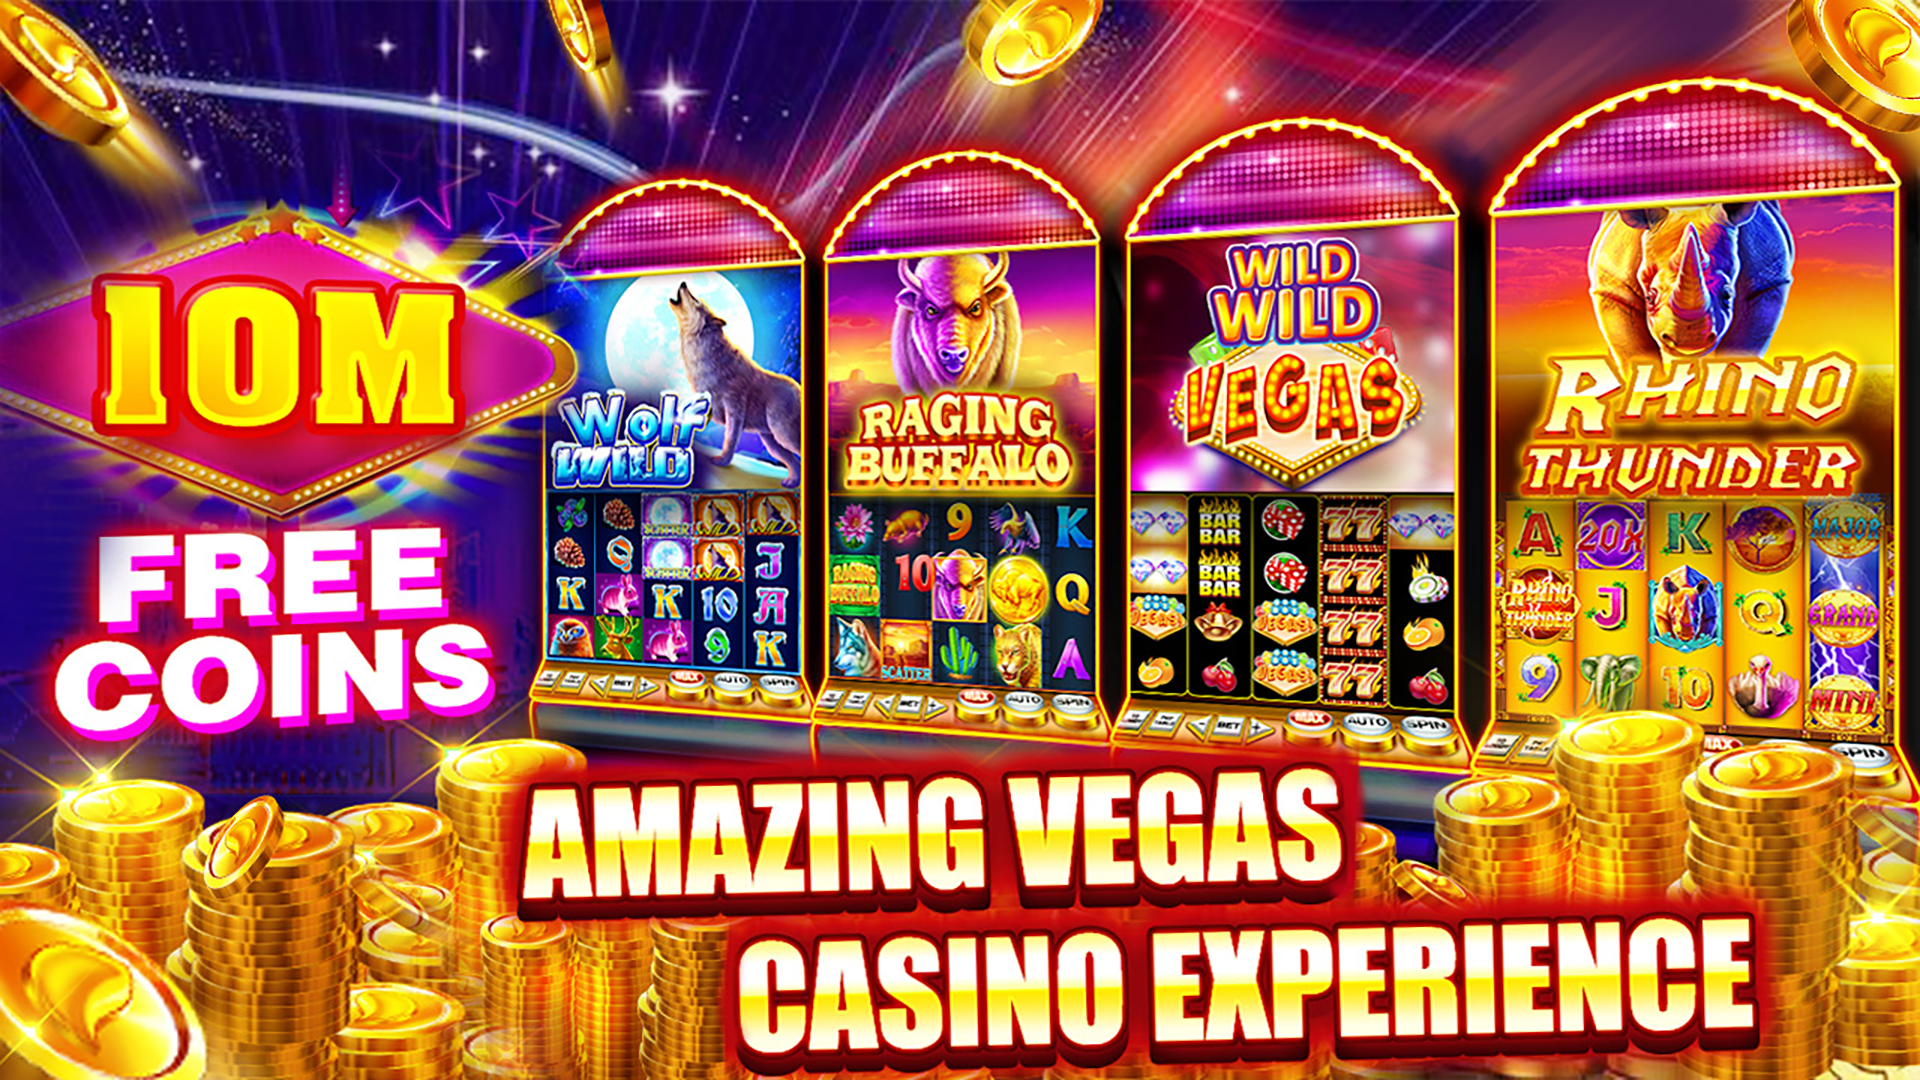 Free Vegas Slots For Fun